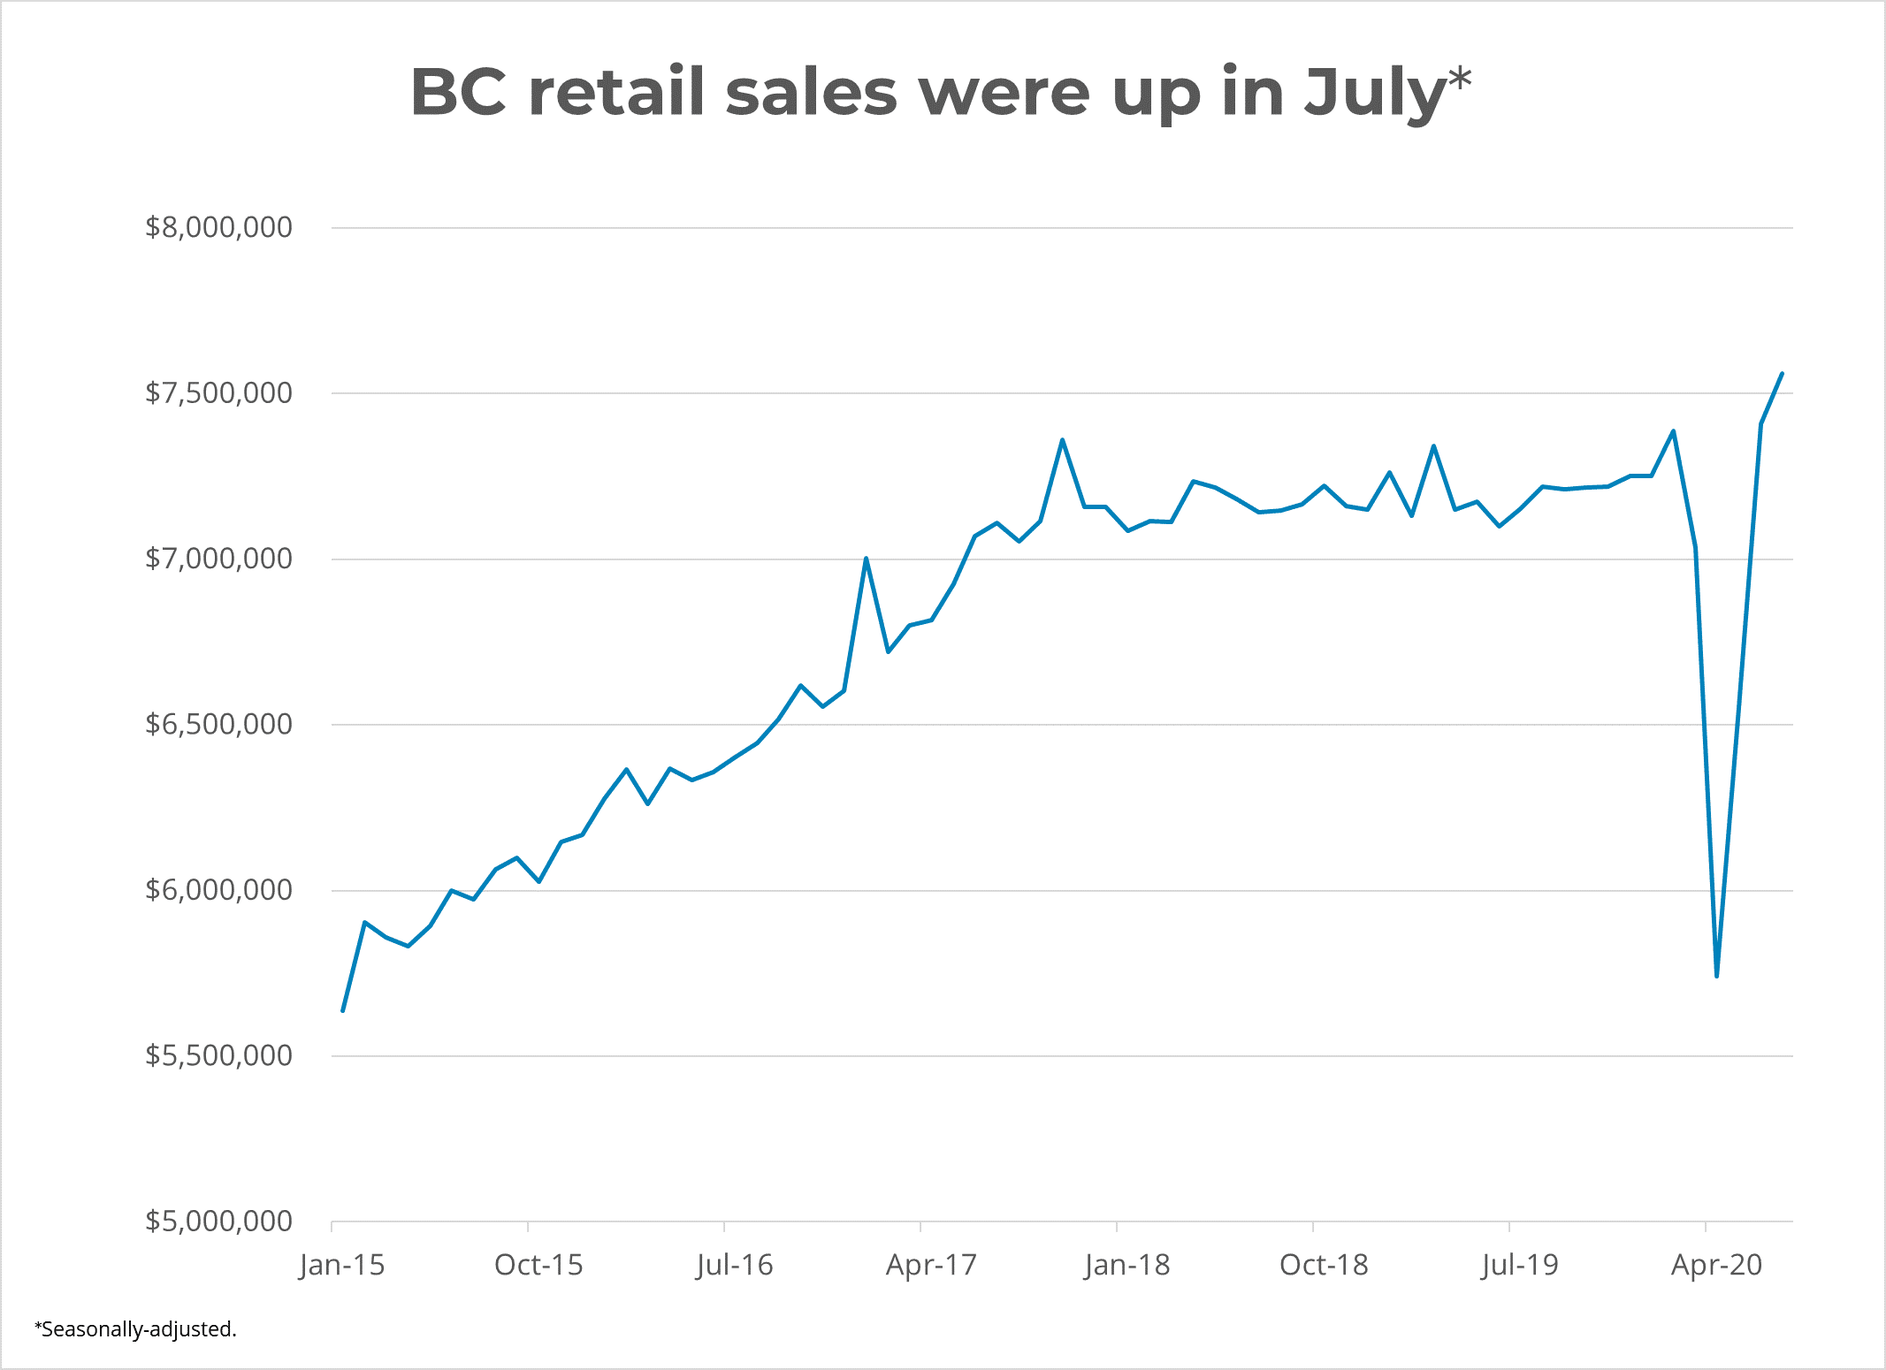 BC Retail Sales in July 2020